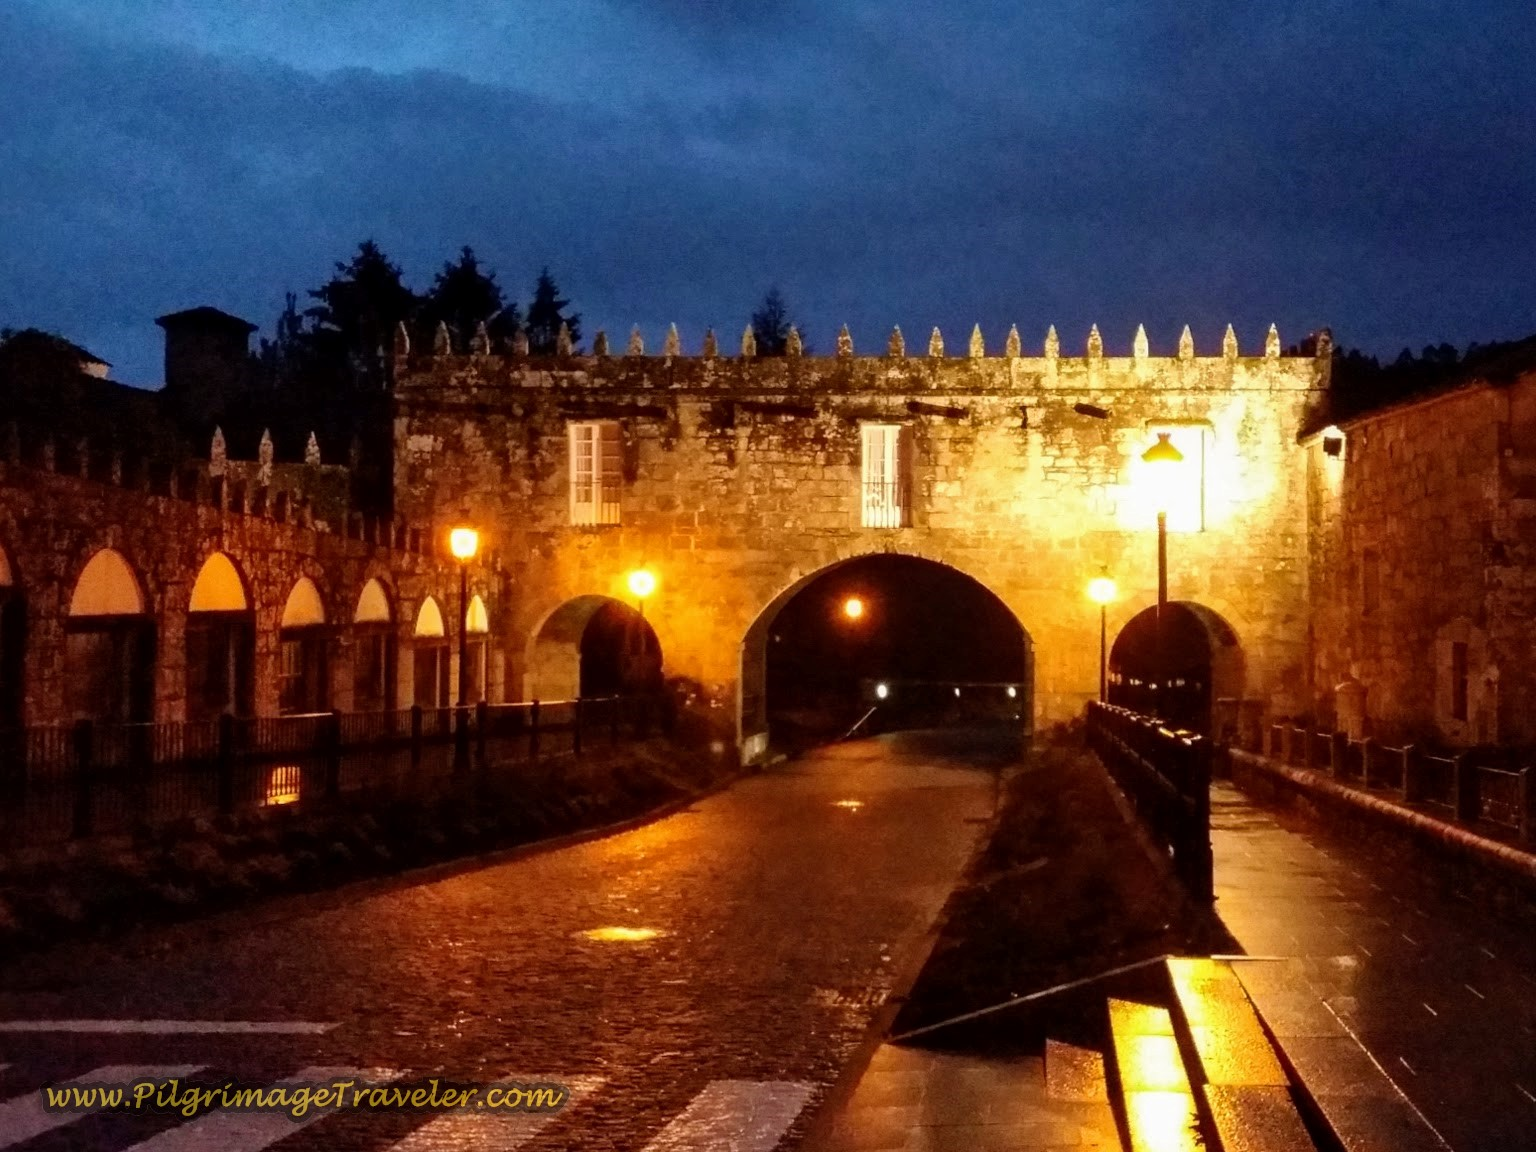 Leaving Negreira through the Pazo do Cotón medieval gate, just before sunrise on day two of the Camiño Fisterra